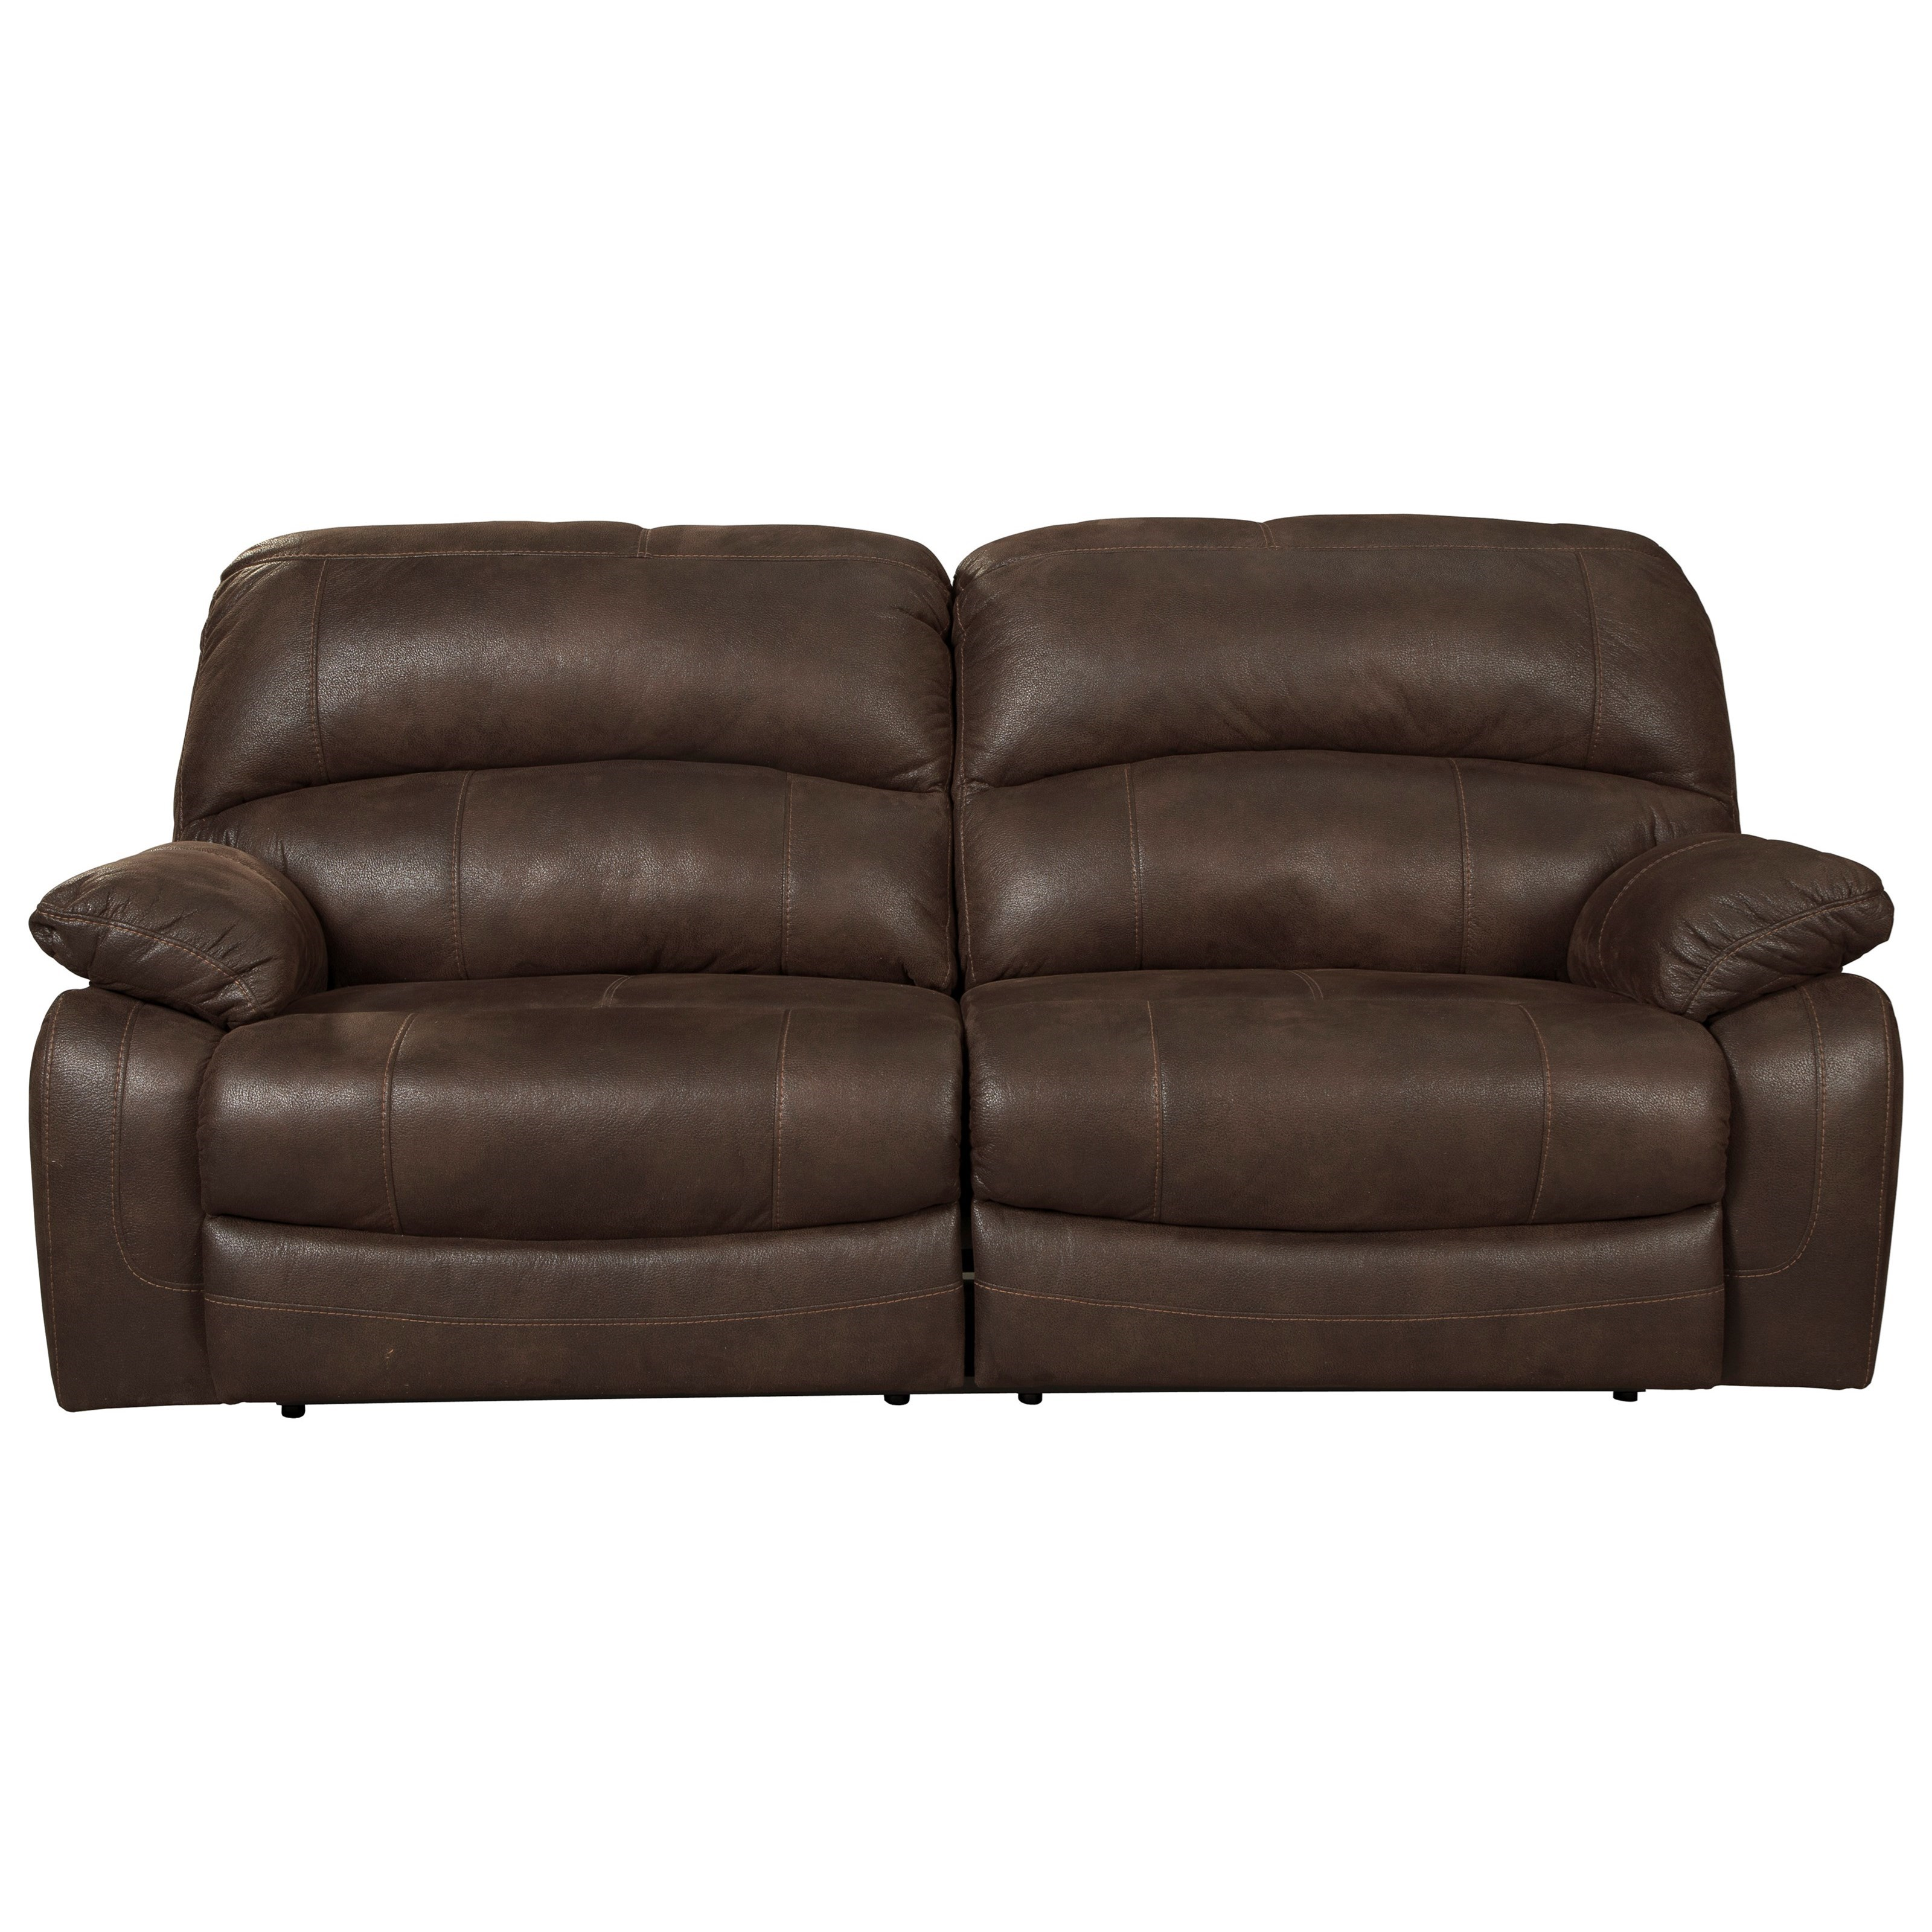 Ashley Signature Design Zavier 2 Seat Reclining Sofa In Brown Faux Leather Dunk Bright